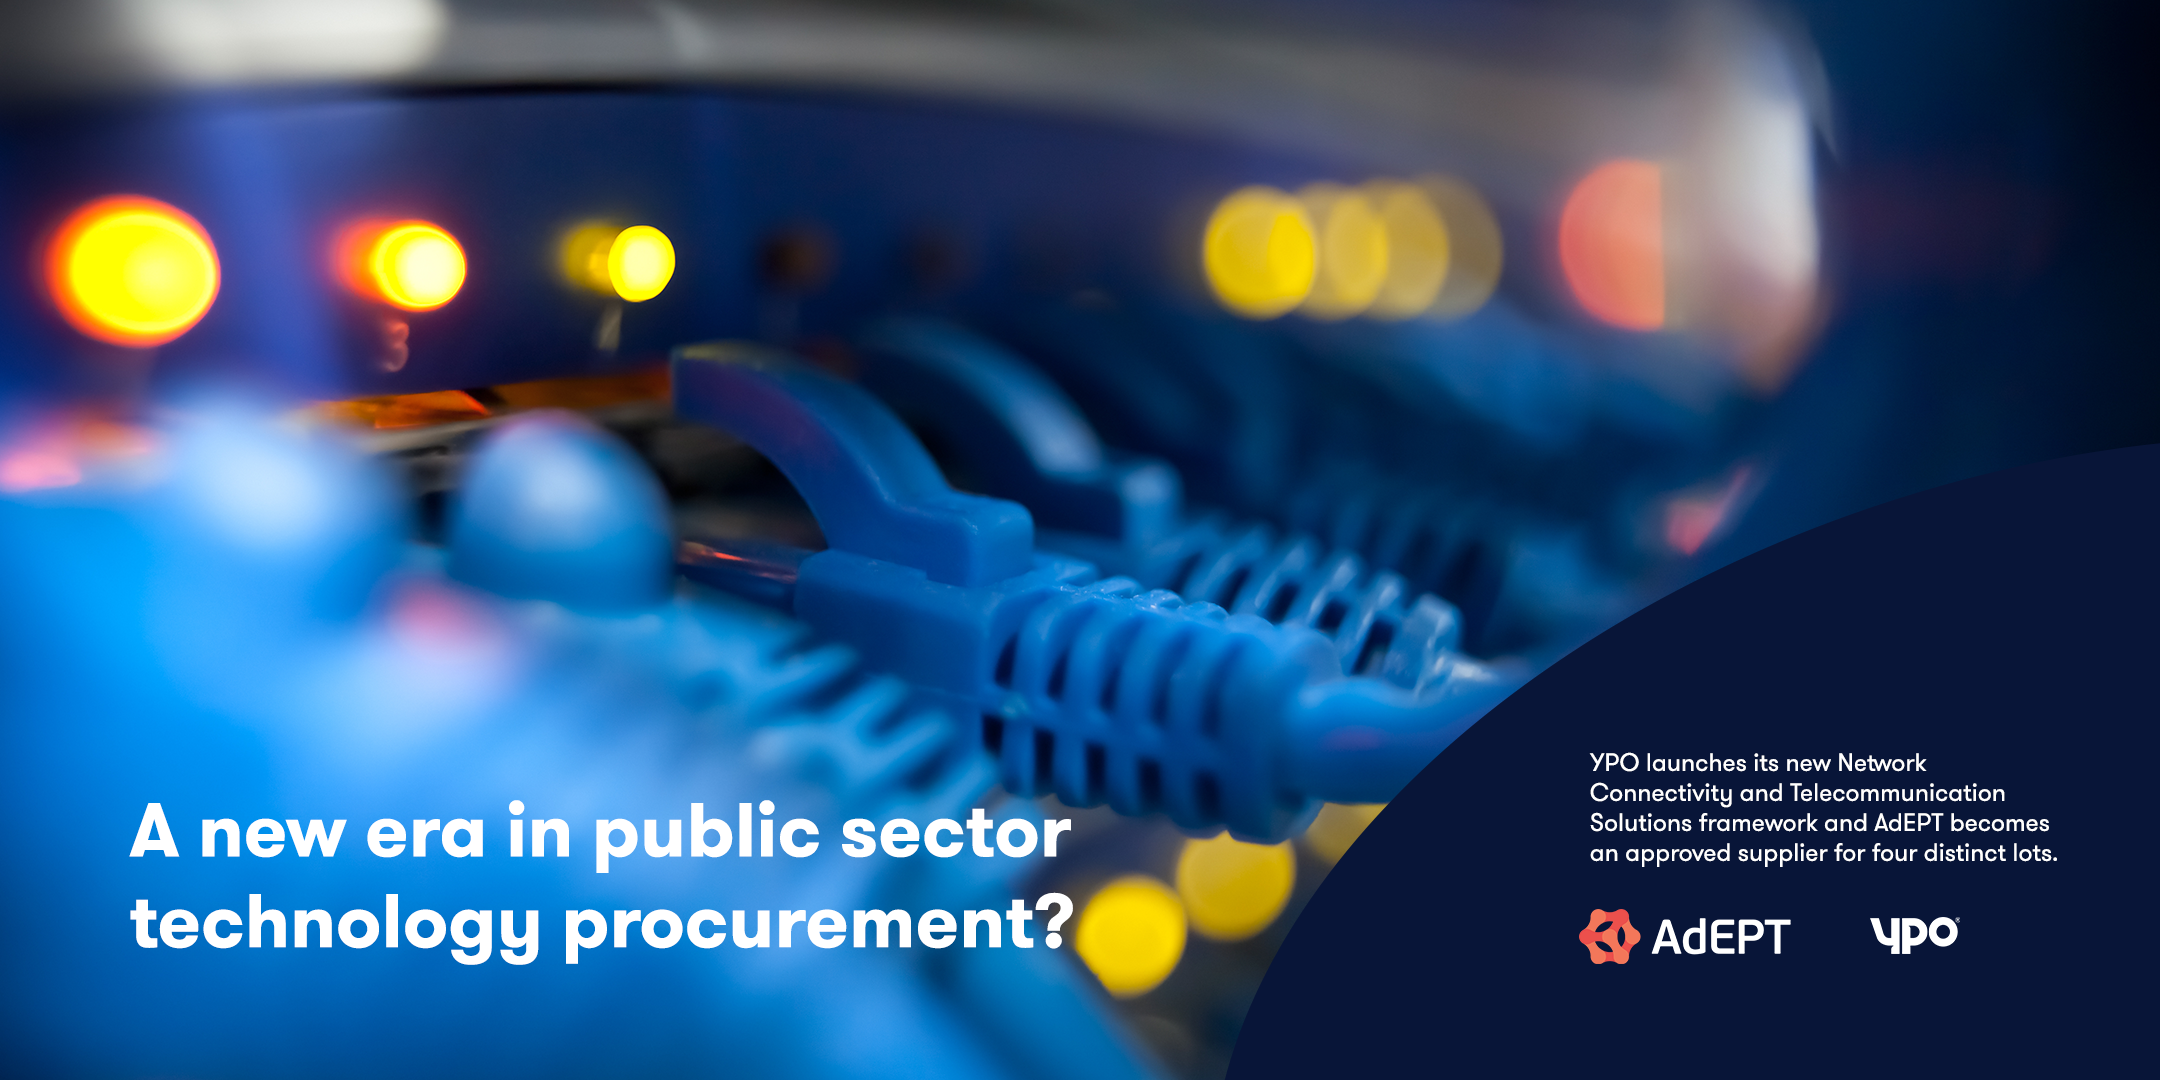 A new era in public sector technology procurement?